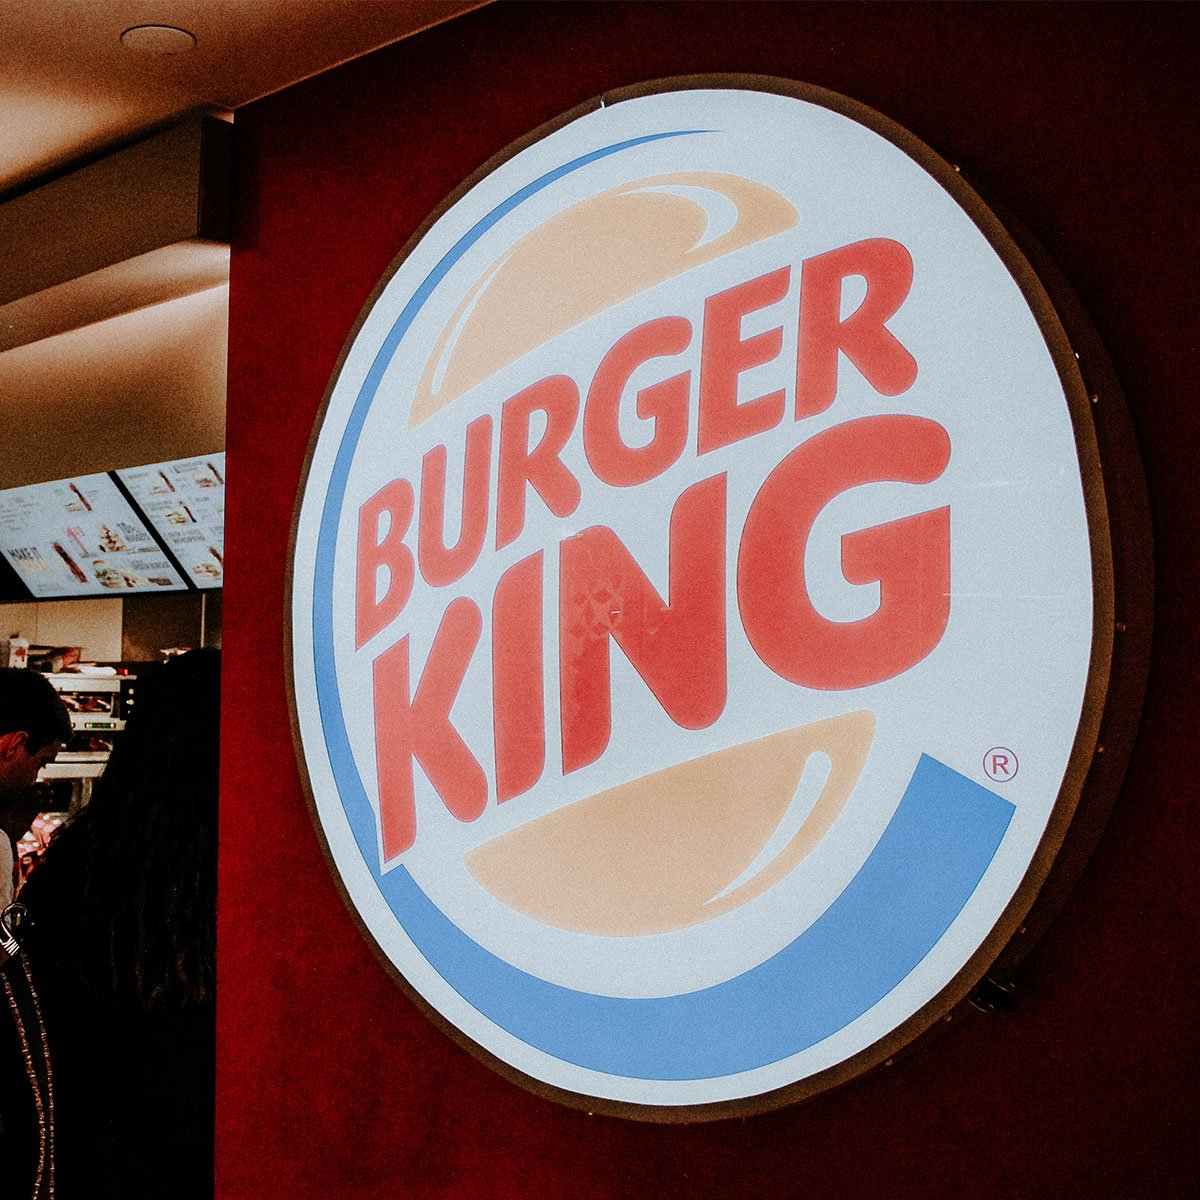 Burger King logo sign in the Union